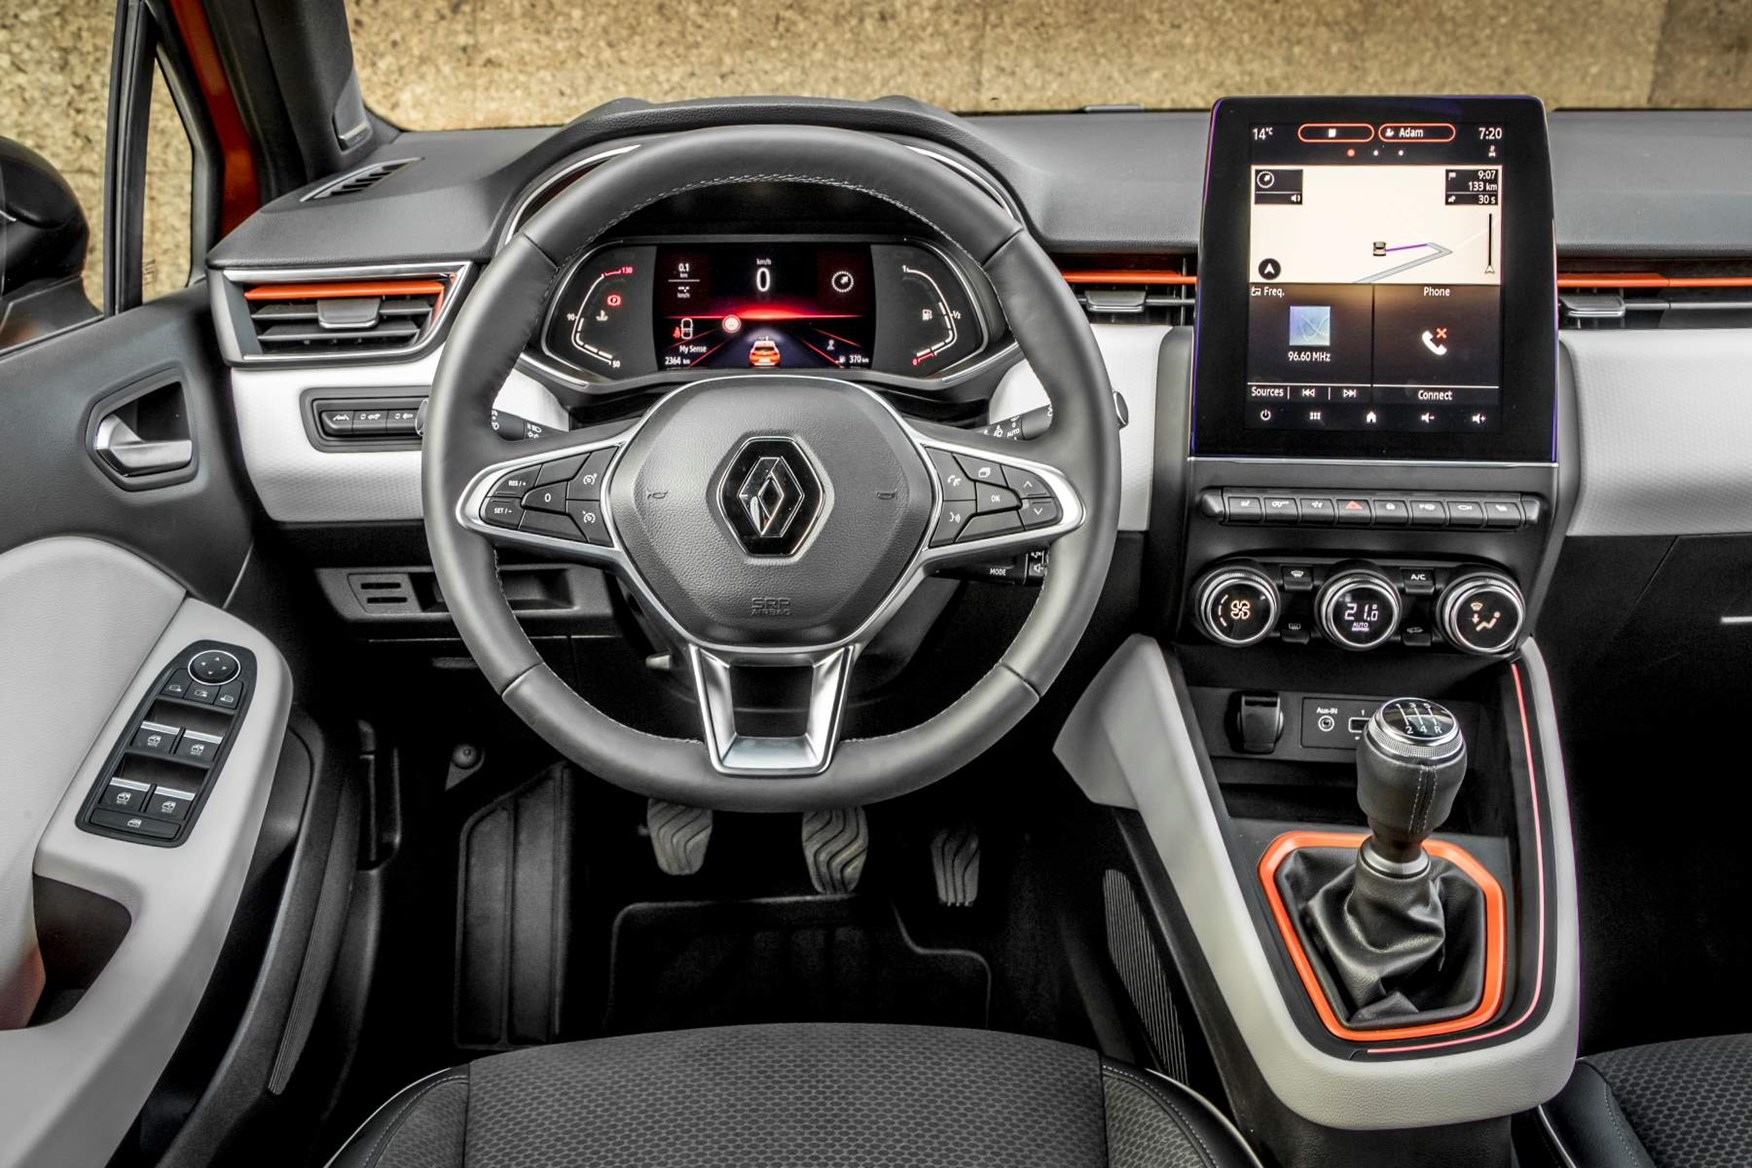 2019 left-hand drive Renault Clio dashboard